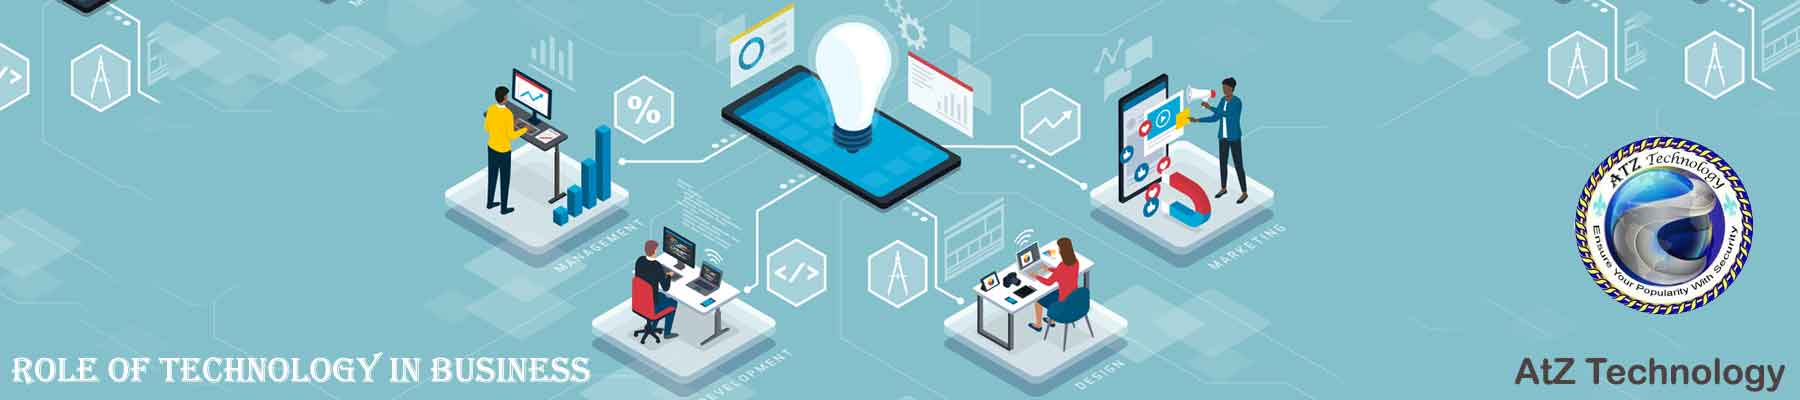 Role of Technology in Business